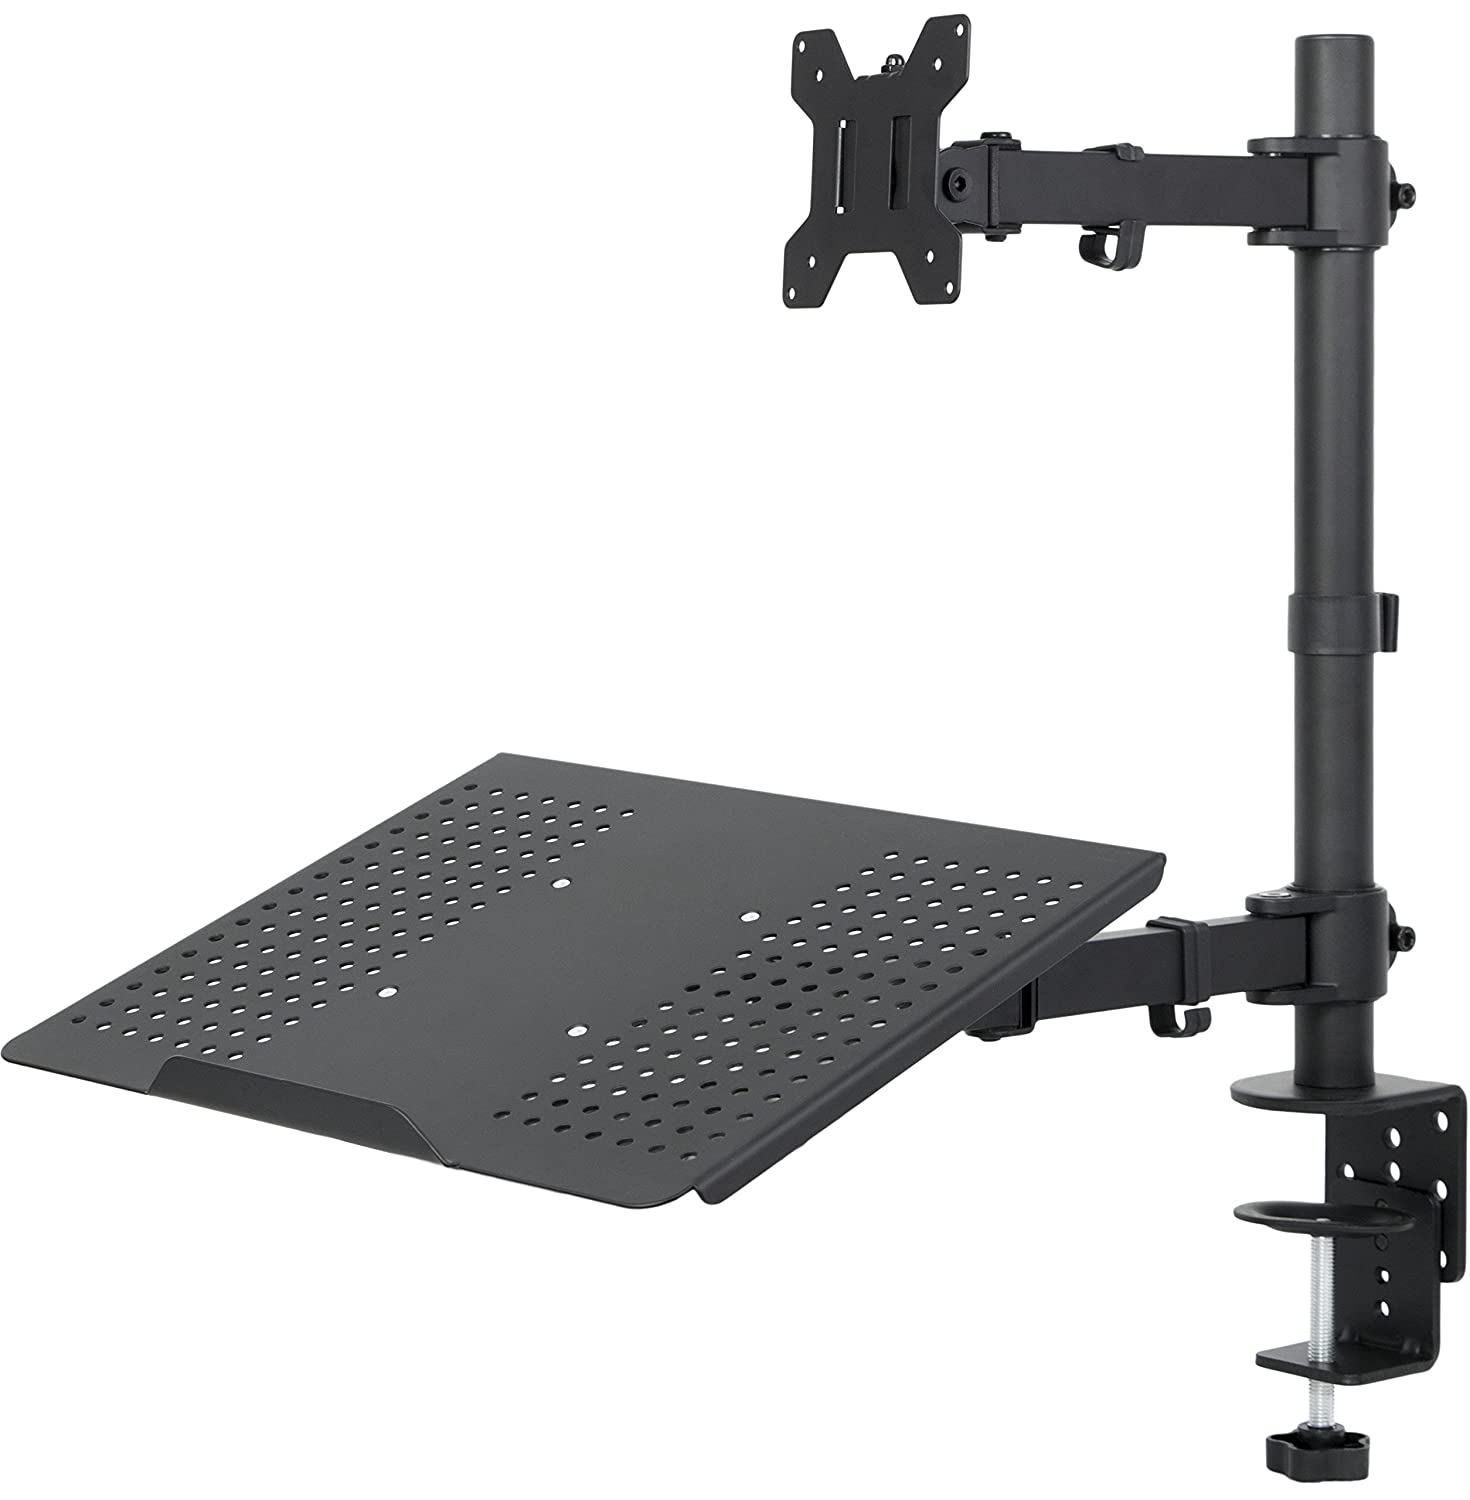 Amazon com vivo triple lcd monitor desk mount stand heavy duty fully - Dual Mount For 1 Laptop 1 Lcd Monitor Desktop Mount Stand Black